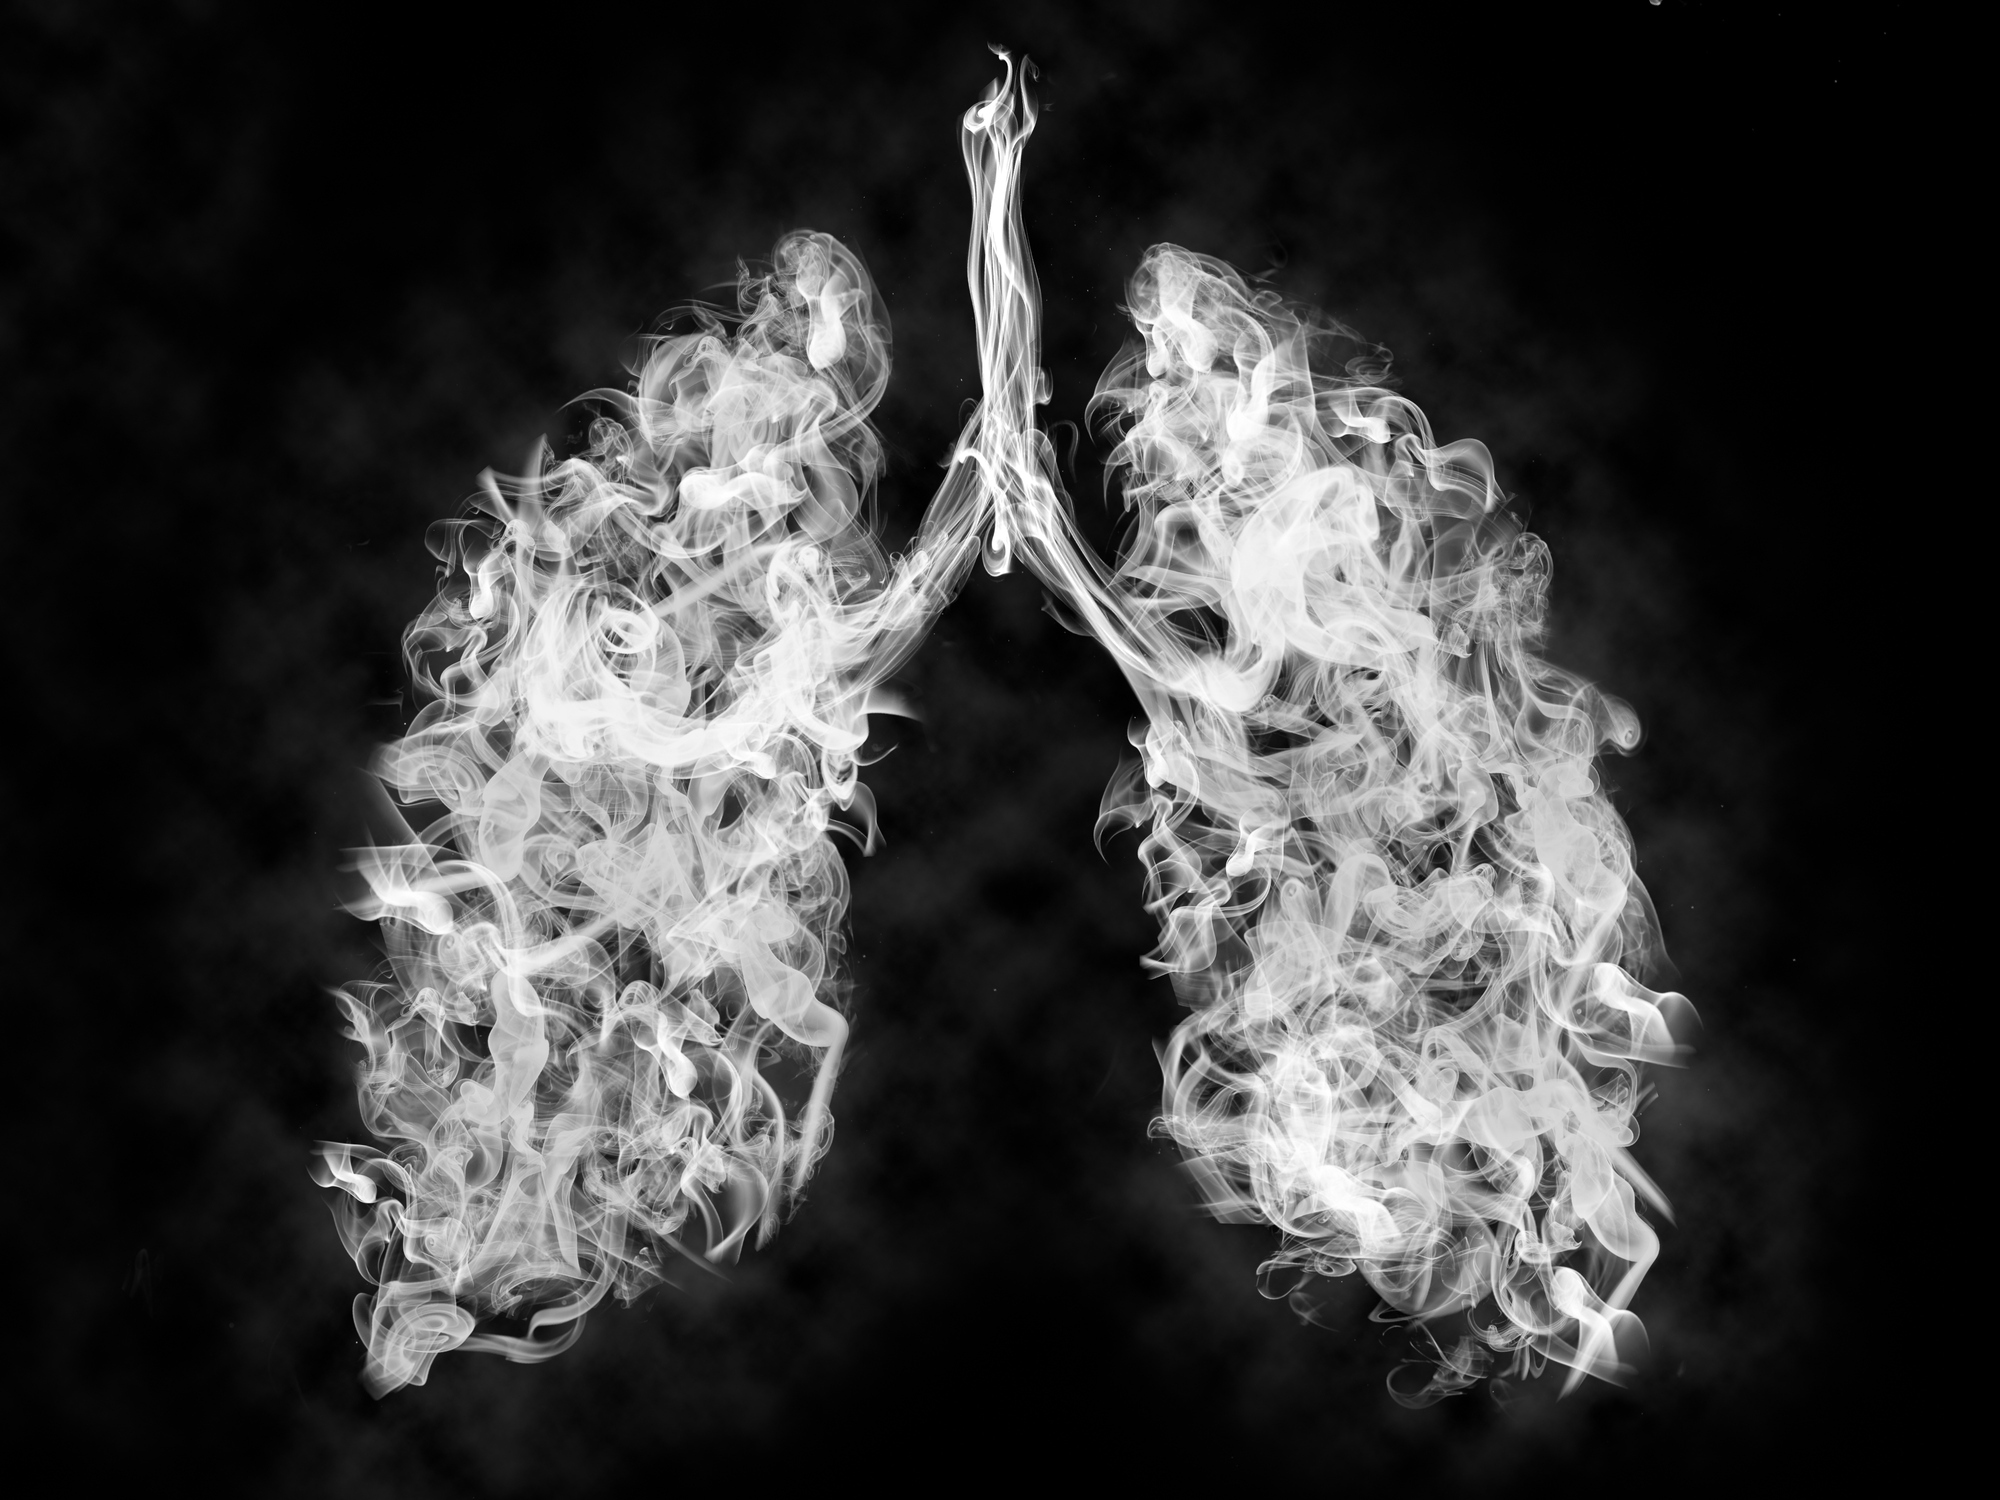 E-cigarette vapor linked to cancer in mice | National Institutes of Health  (NIH)